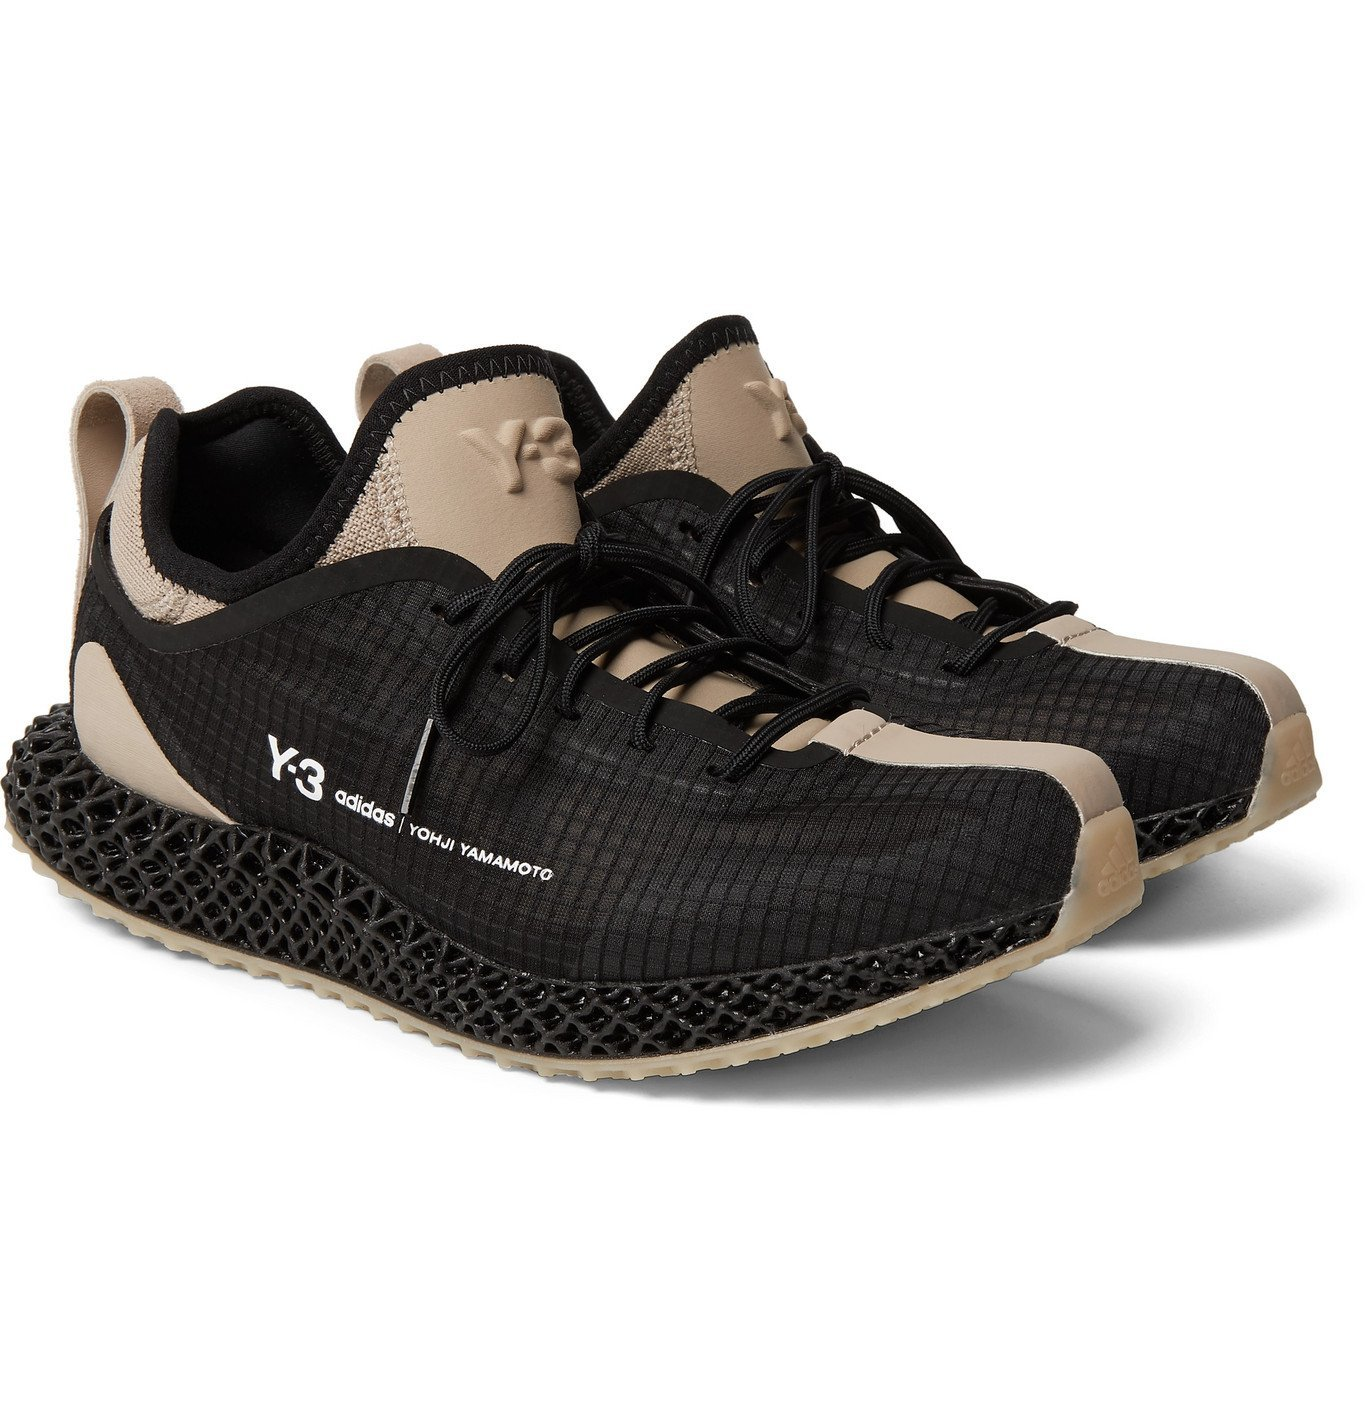 Photo: Y-3 - Runner 4D IO Suede and Neoprene-Trimmed Ripstop and Primeknit Sneakers - Black